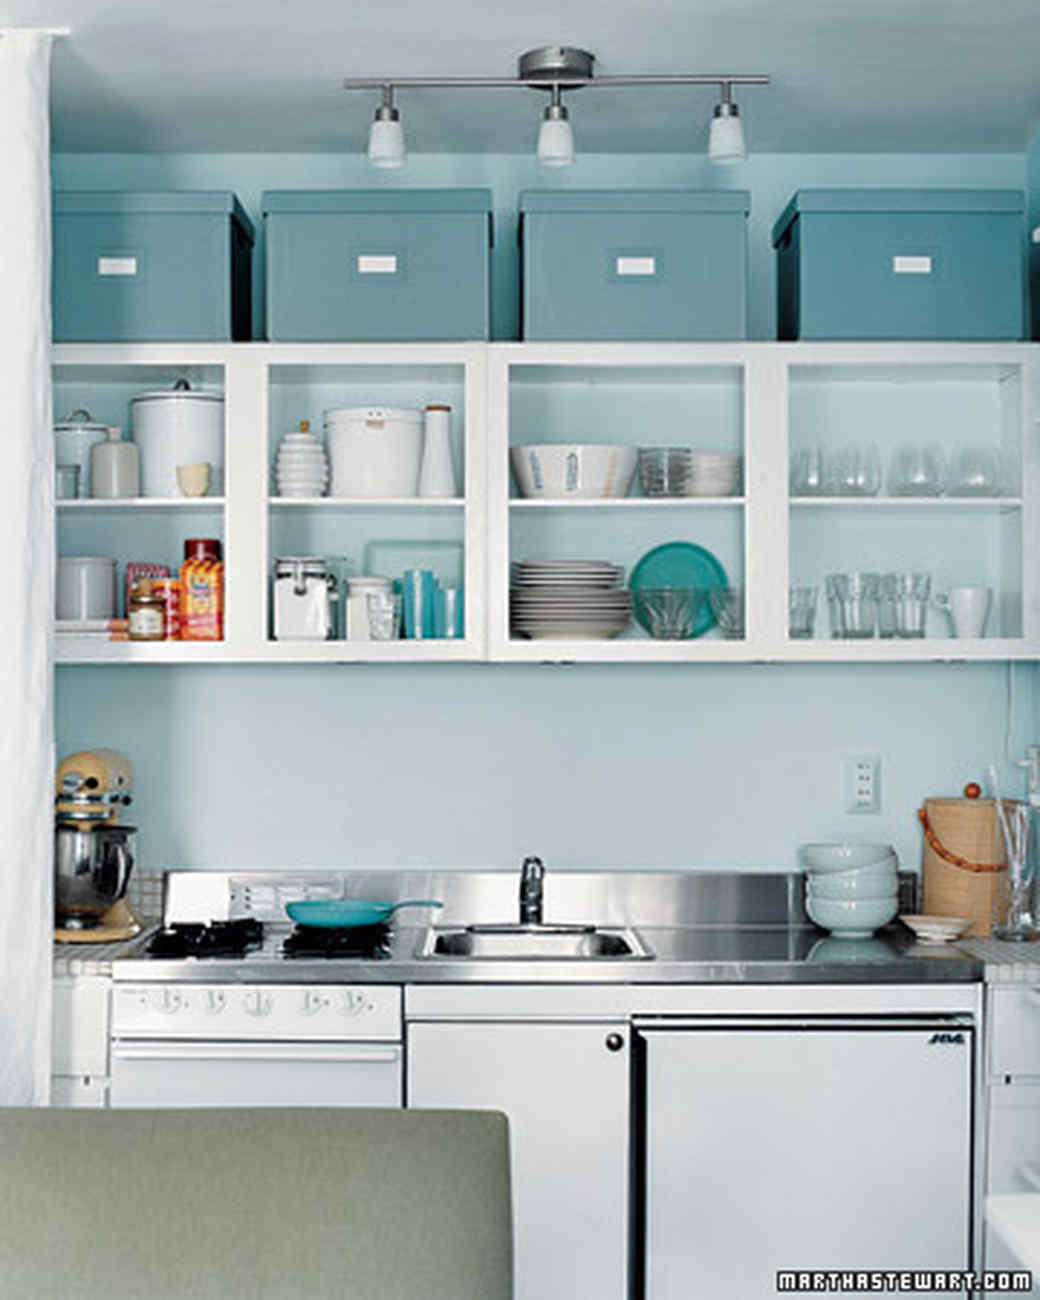 Best 25 Appliances Ideas On Pinterest: Small Kitchen Storage Ideas For A More Efficient Space